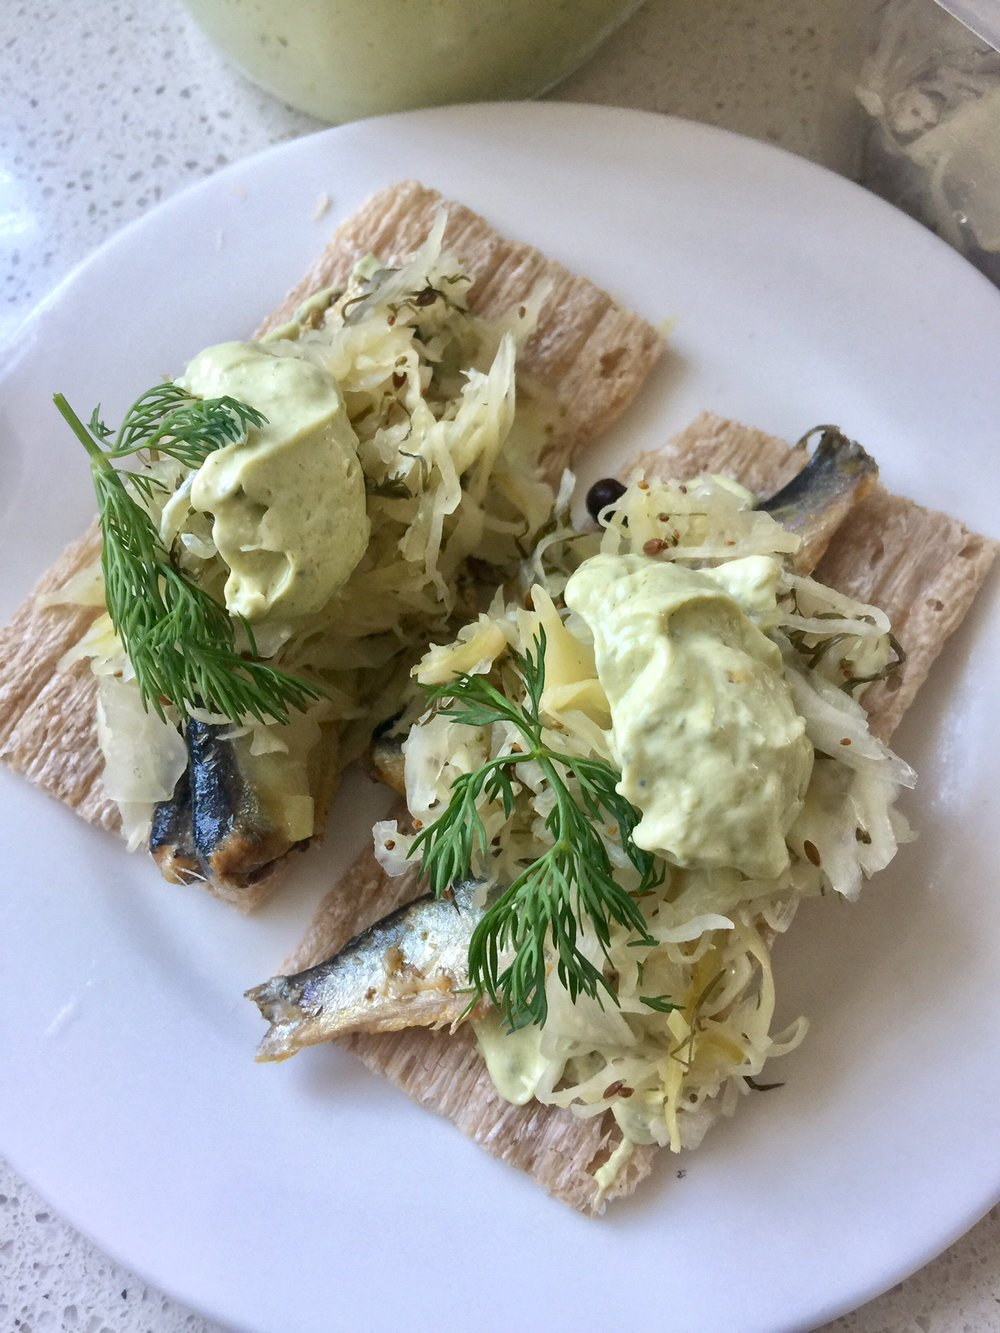 Coconut Rosemary Mayonnaise, Sardines & Sauerkraut on Buckwheat Crisps Recipe